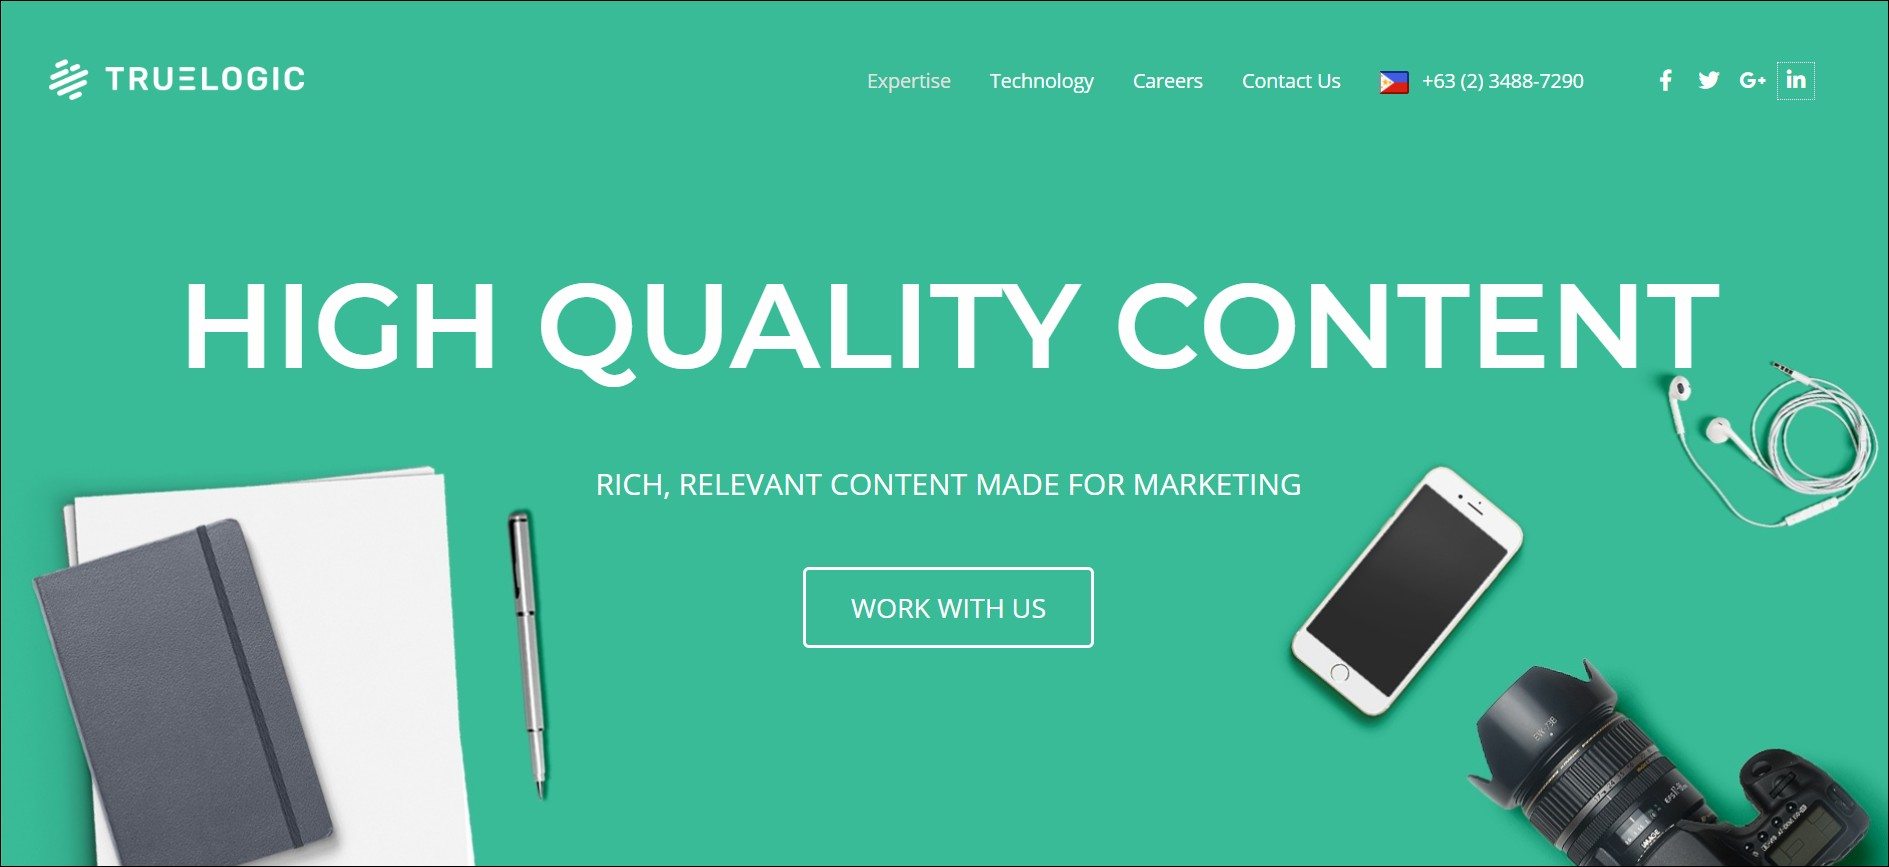 Truelogic: content marketing agencies in South East Asia